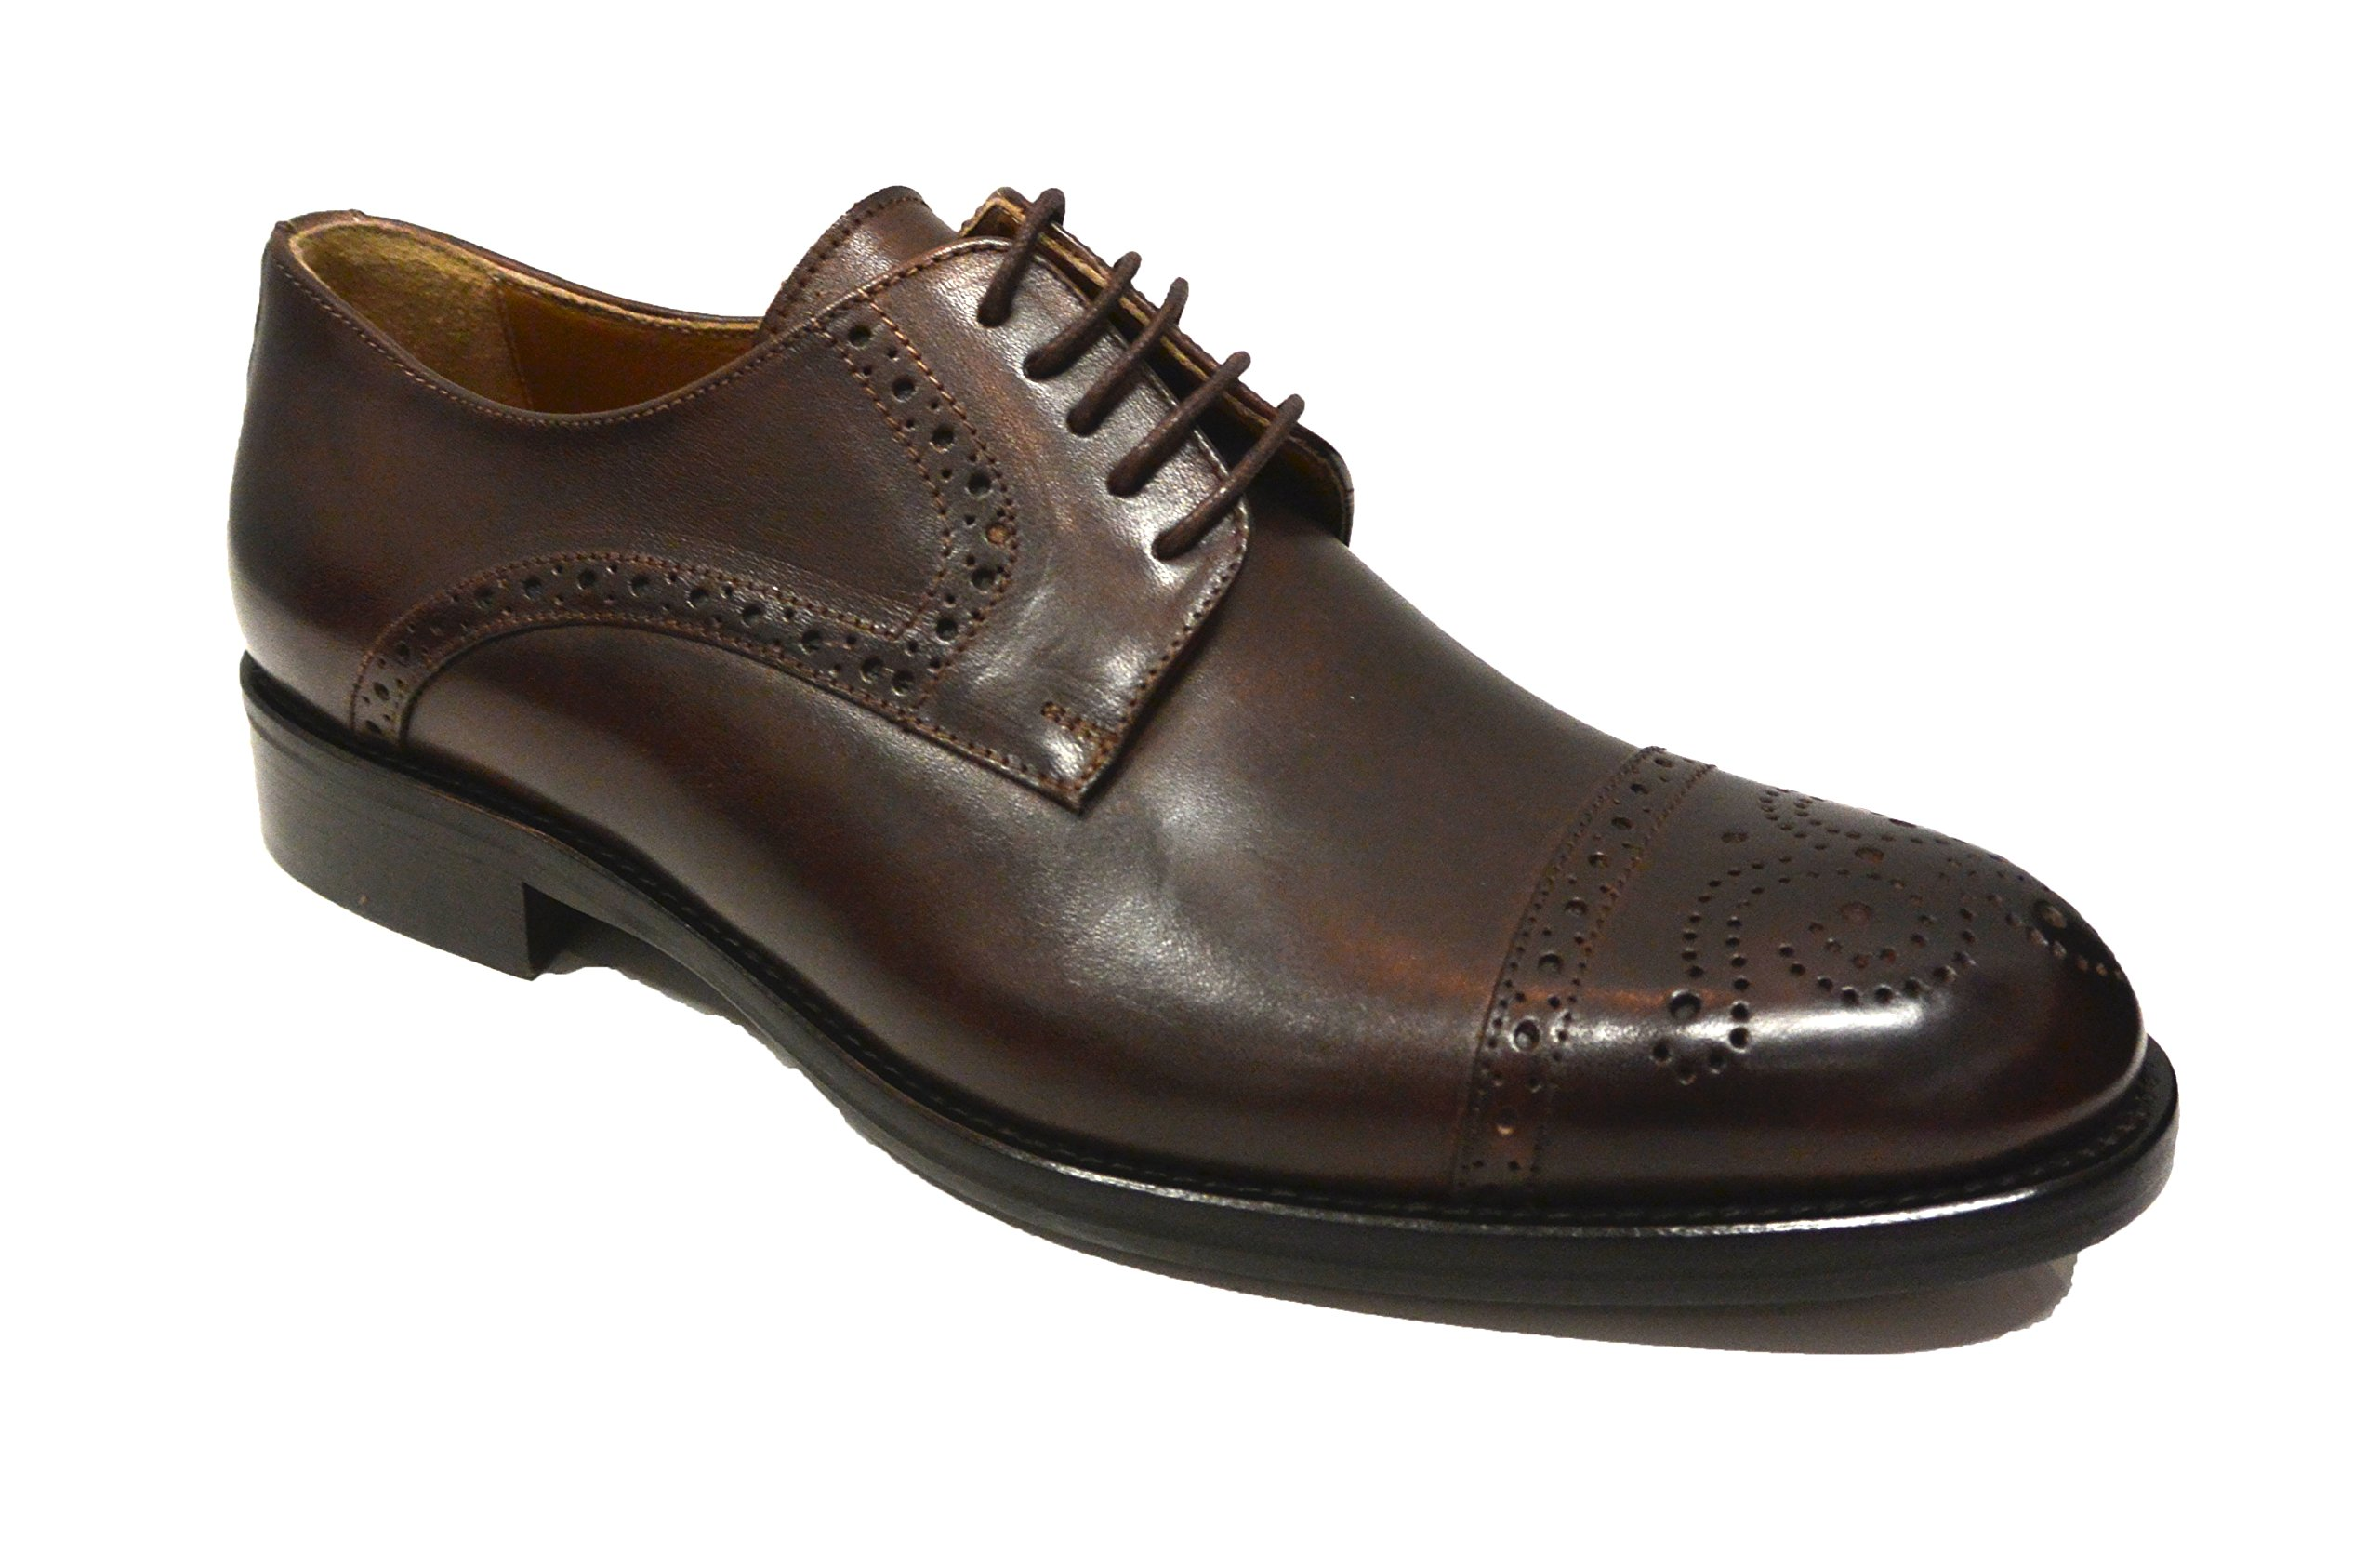 Kenneth Cole New York Men's Travel Agent Oxford, Brown, 9 M US by Kenneth Cole New York